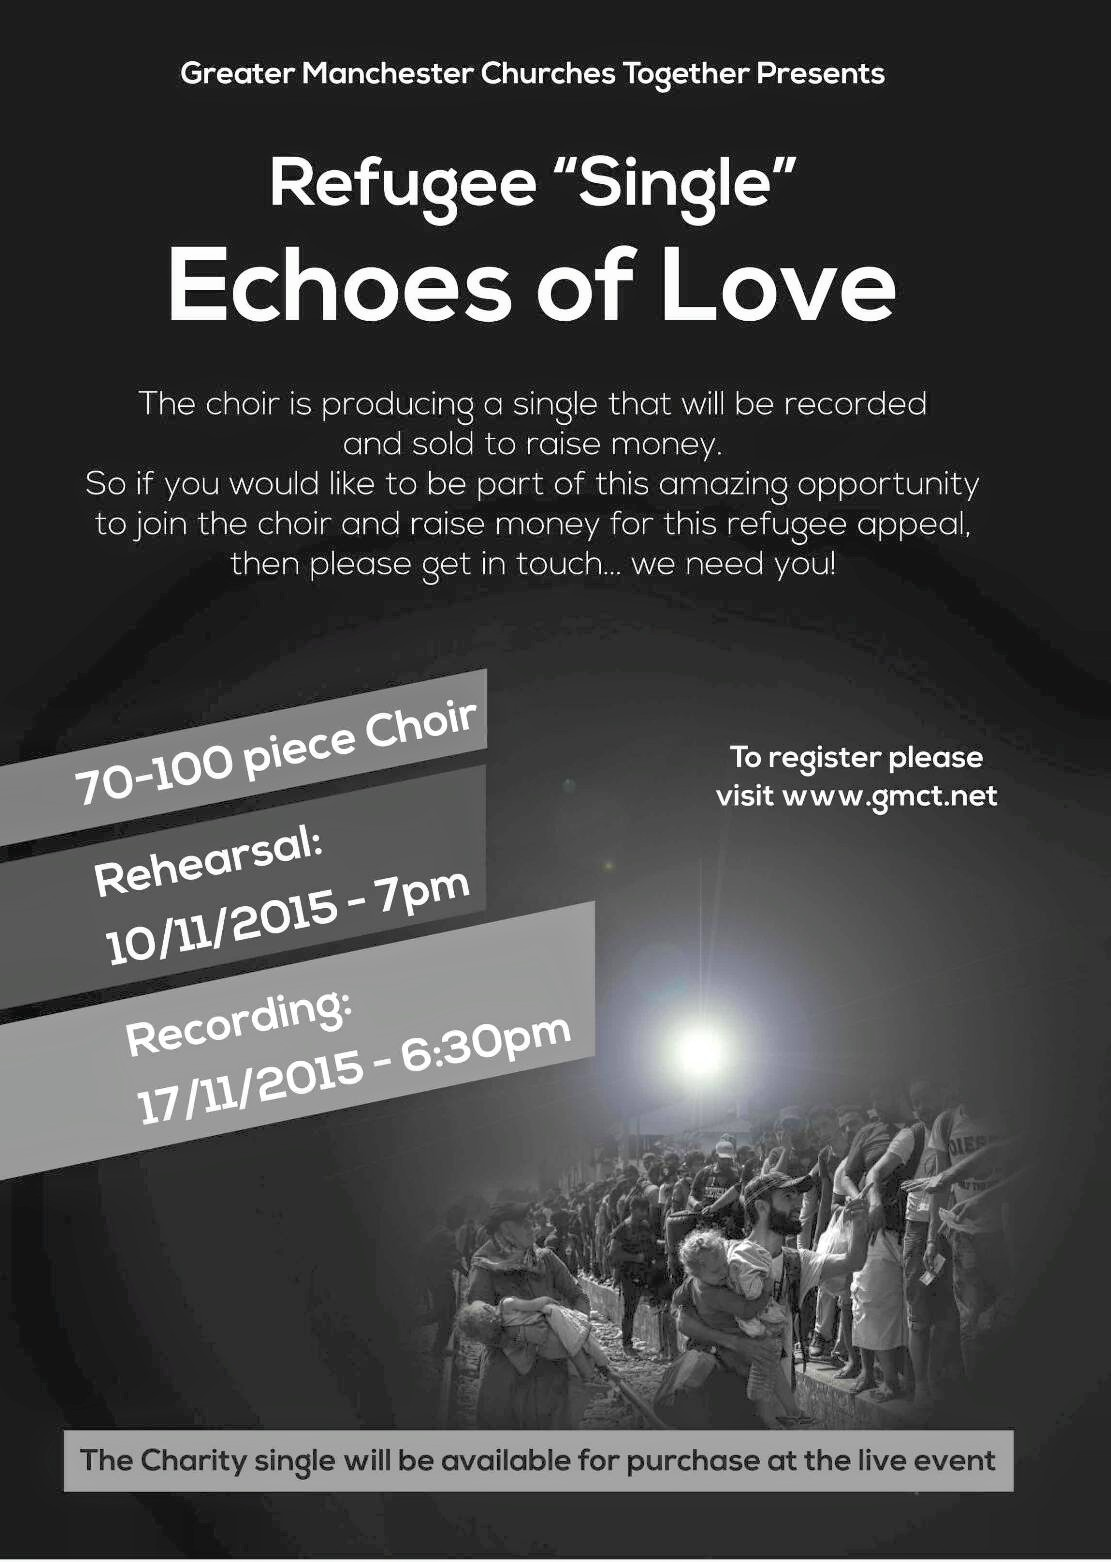 echoes-of-love-flyer